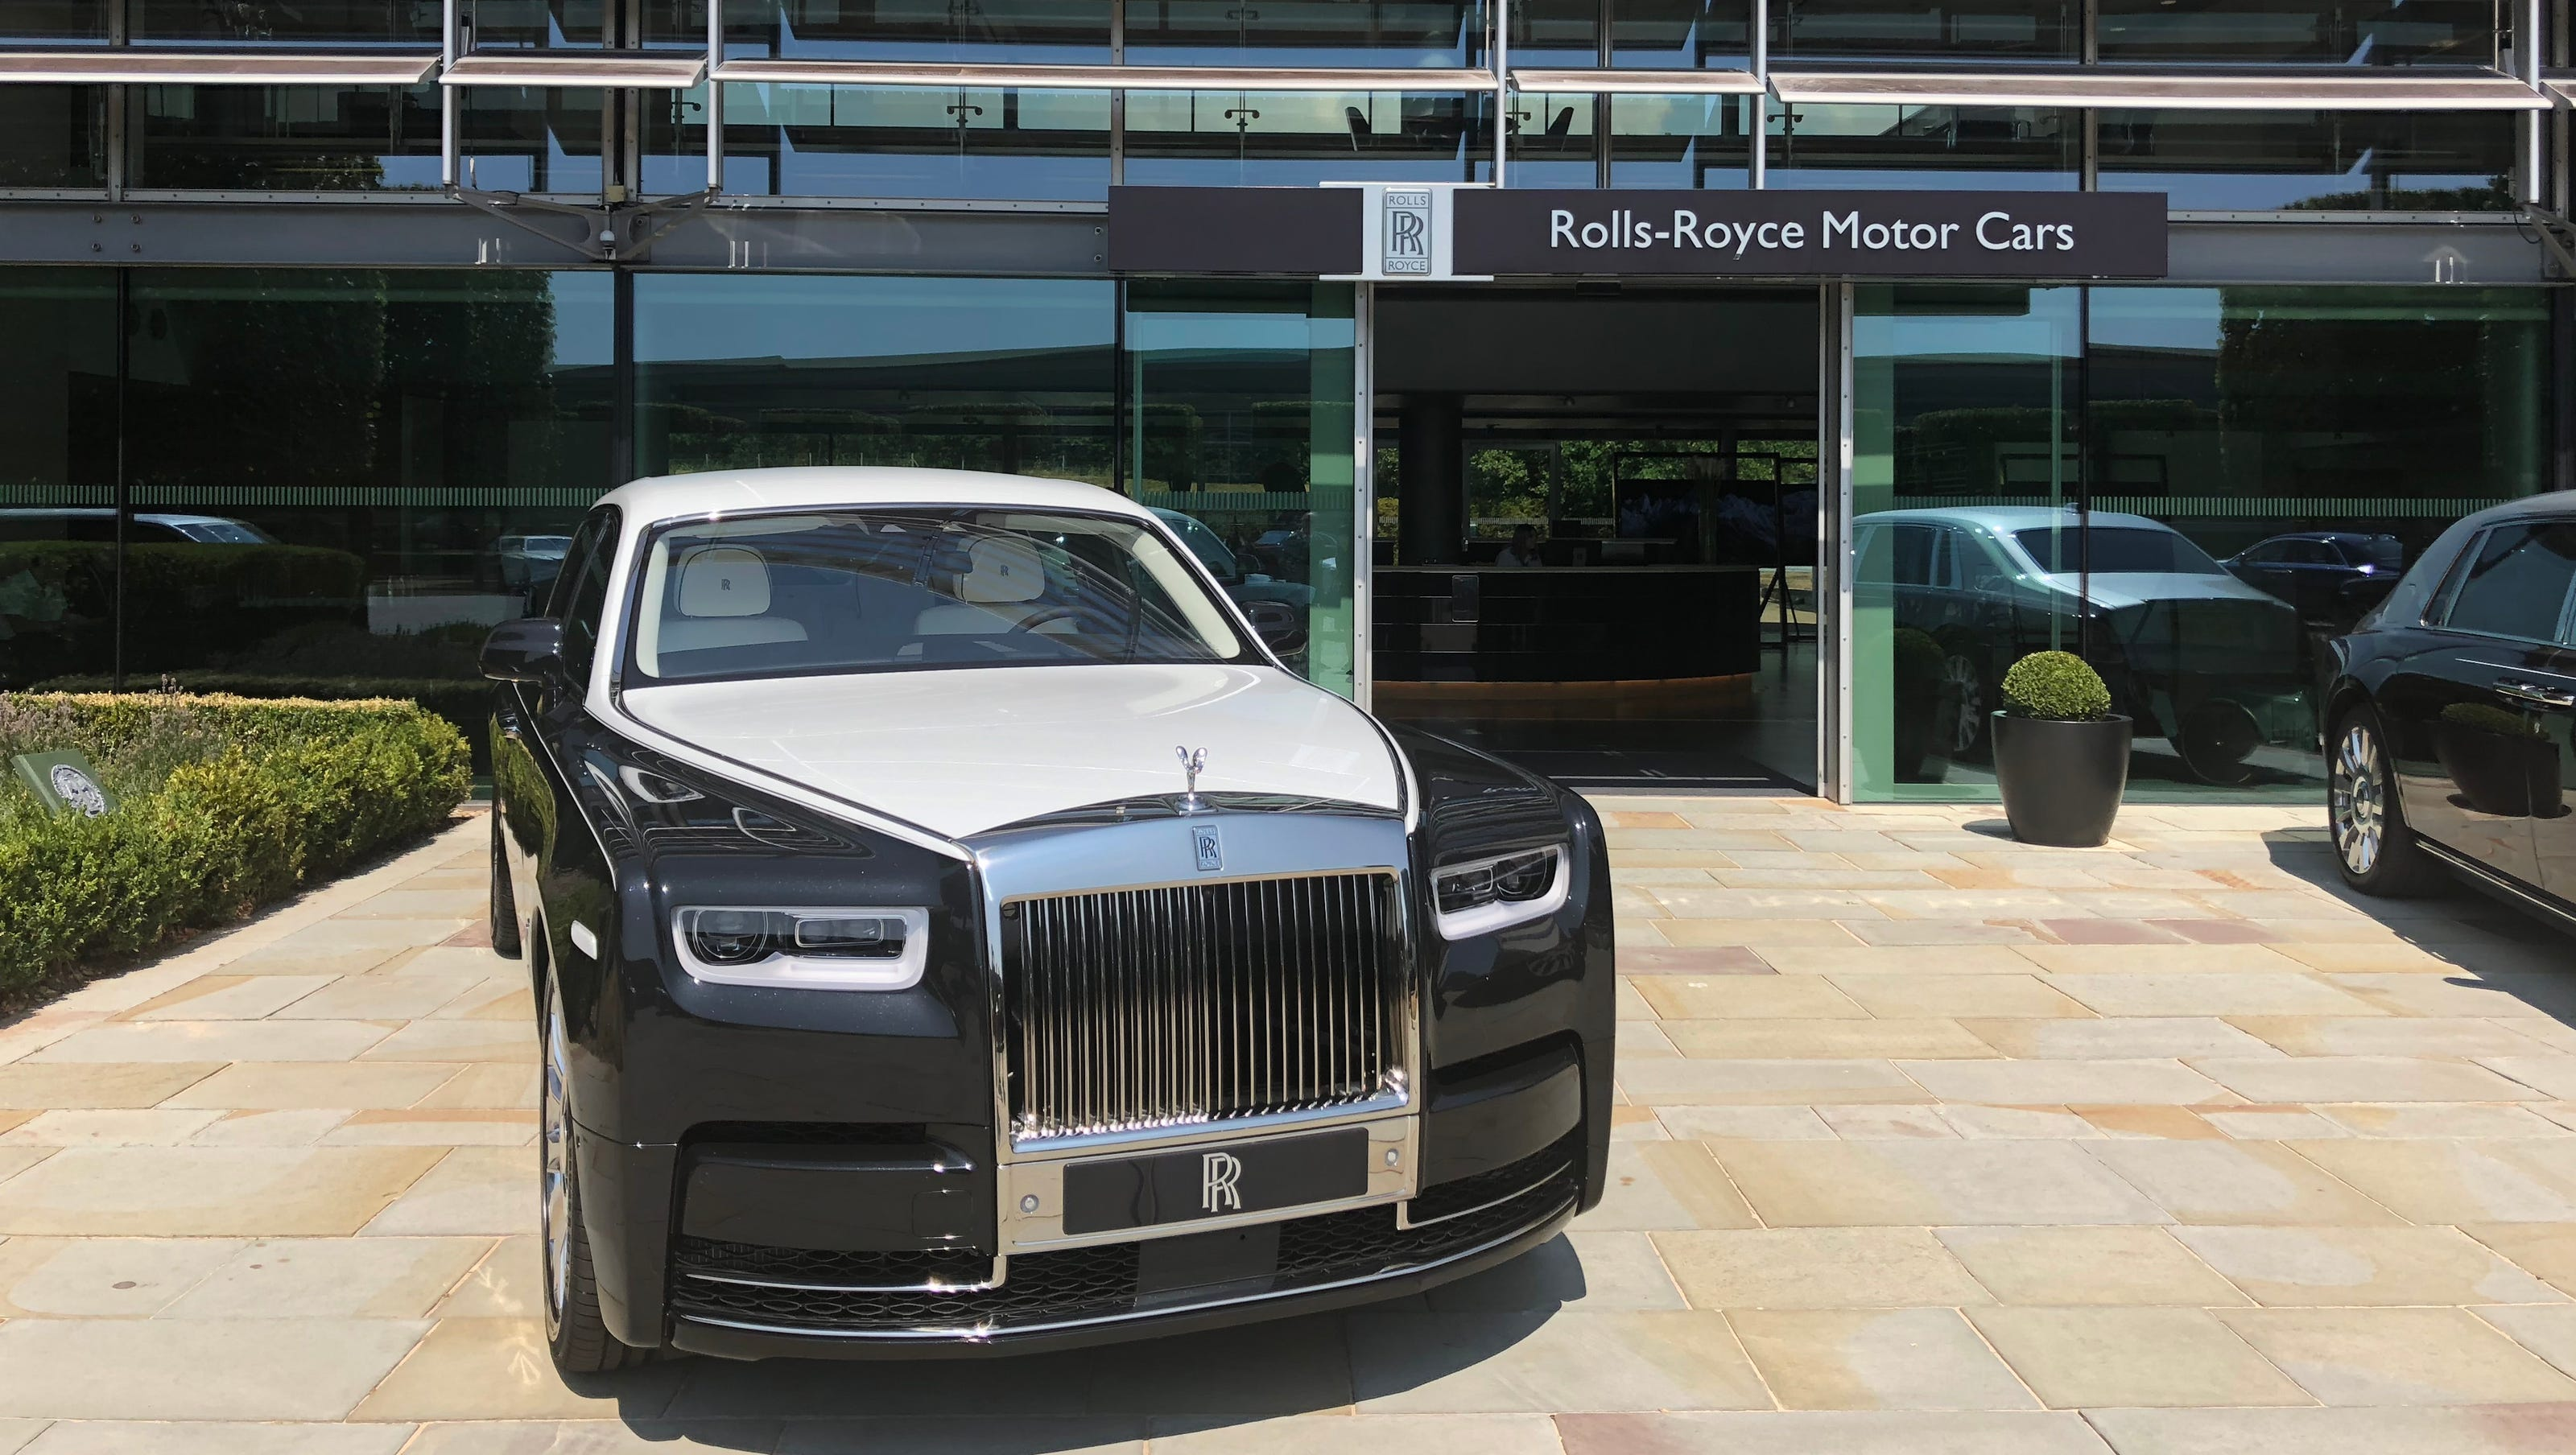 Rolls Royce Welcome To The Home Of The Most Luxurious Cars In The World